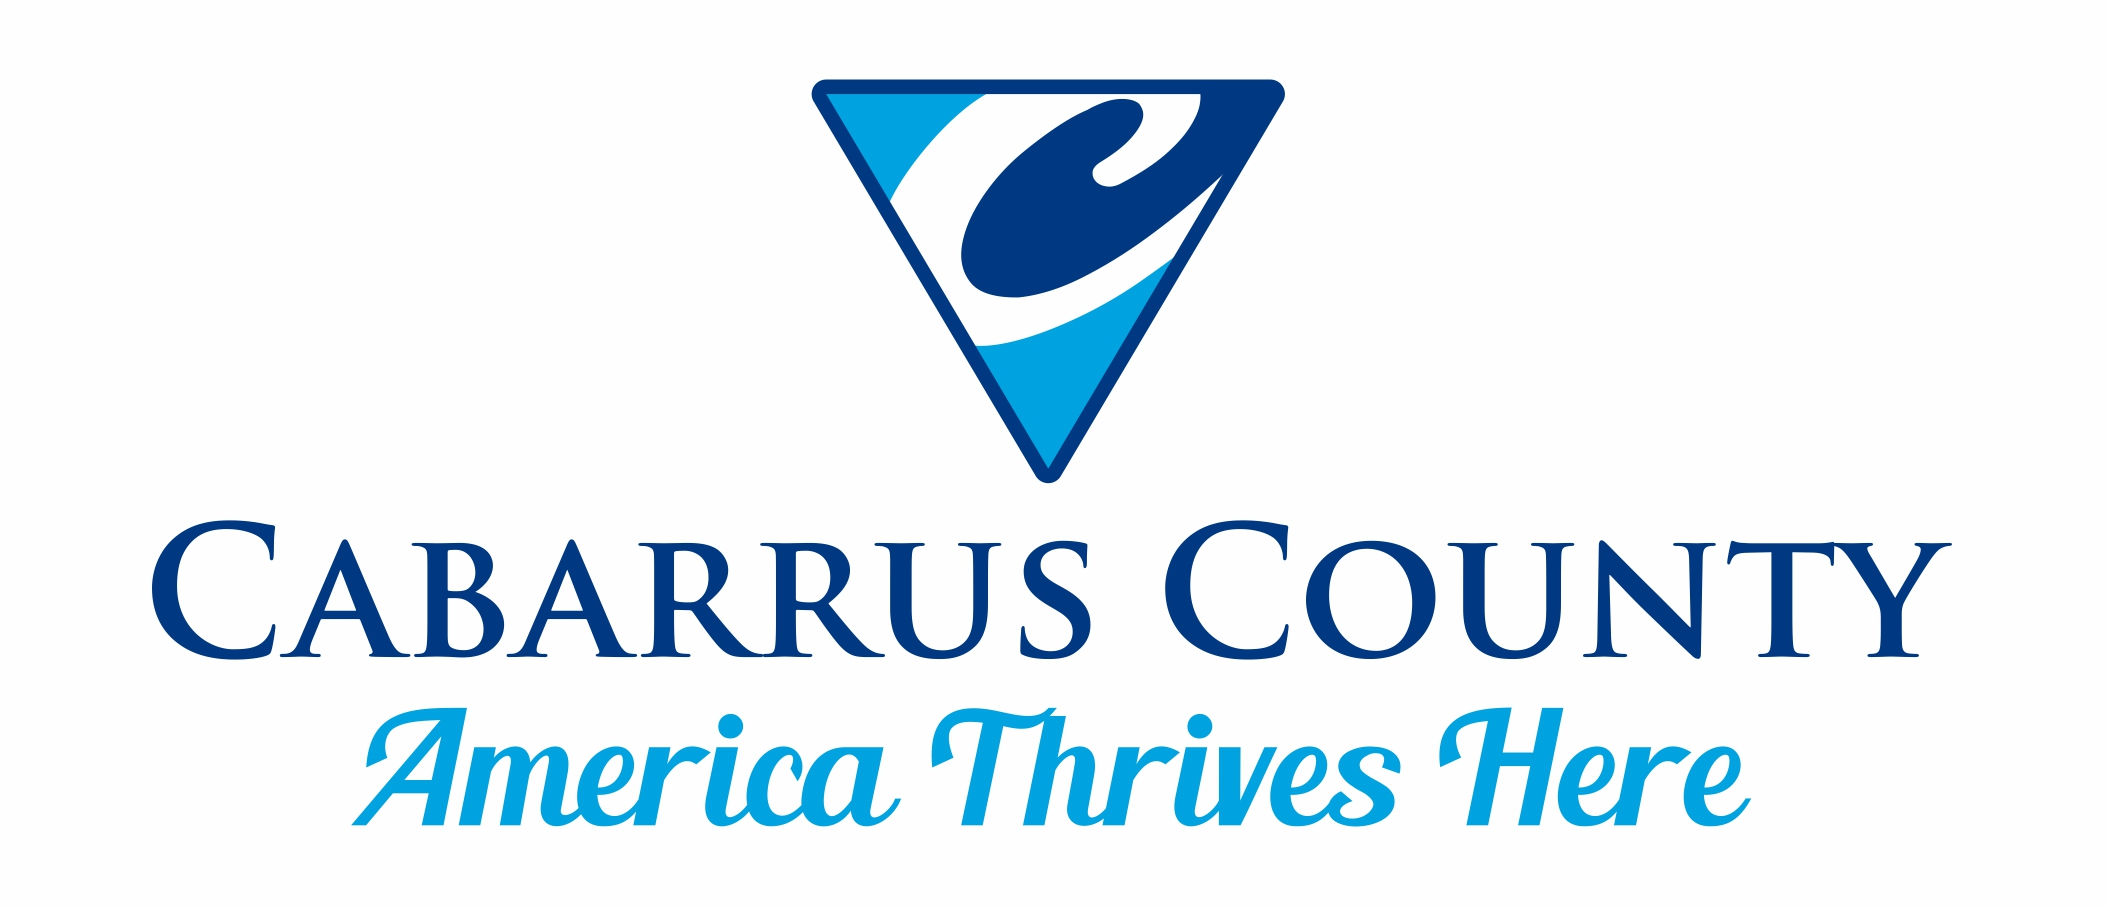 Cabarrus County Brand Logo America Thrives Here